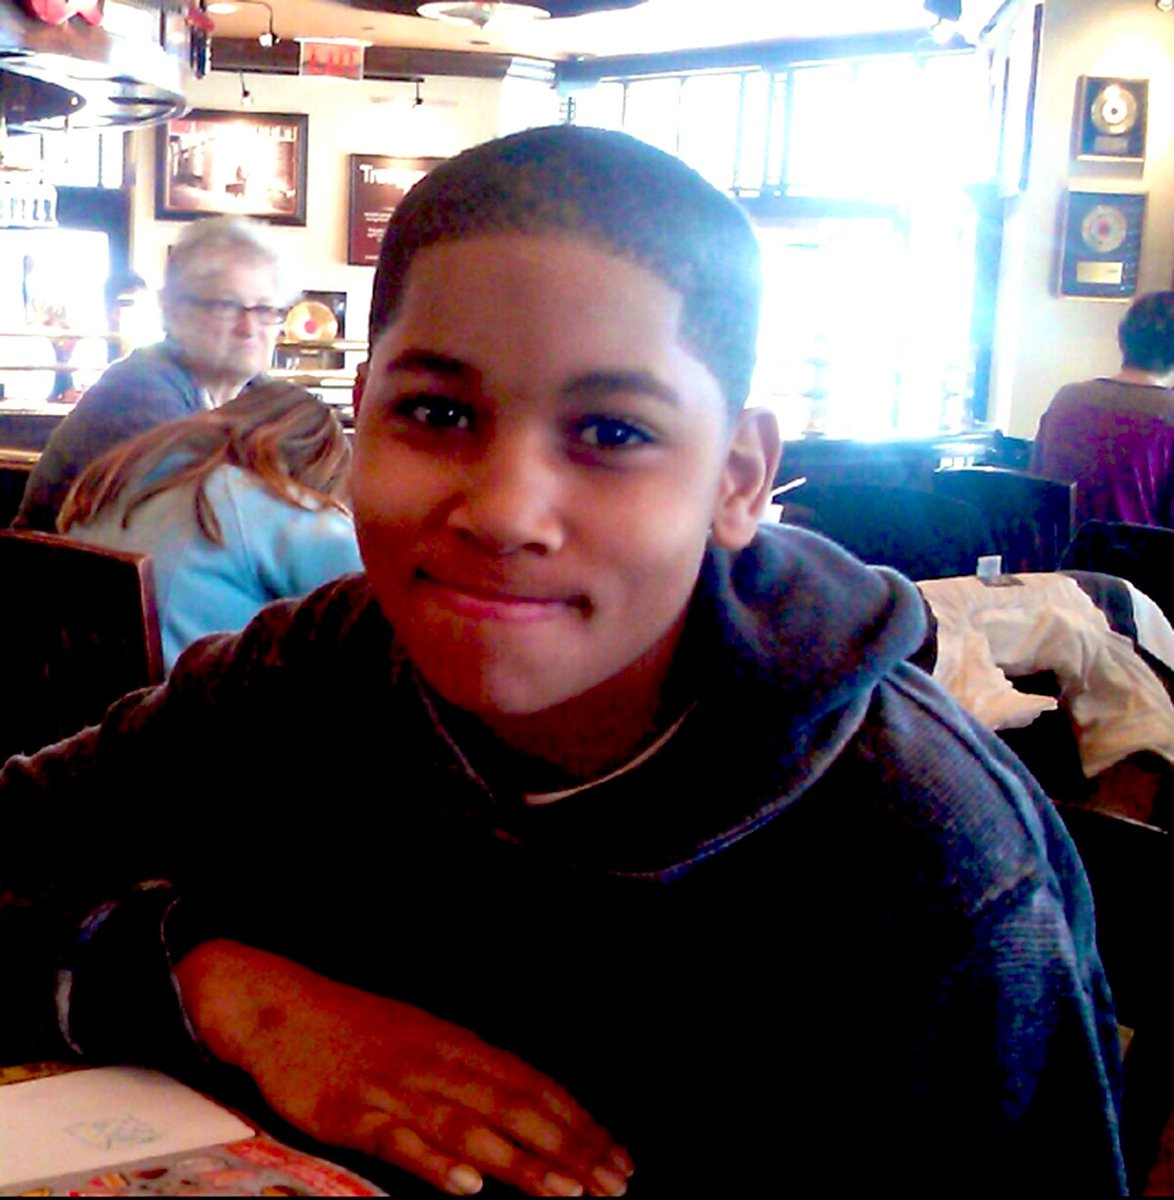 On November 22, 2014, 12-year-old #TamirRice was shot and killed by a Cleveland police officer. Today, he would have been 18. We will continue to fight for justice for Tamir and the countless other Black lives (known and unknown) taken by hands of hatred. #BlackLivesMatter